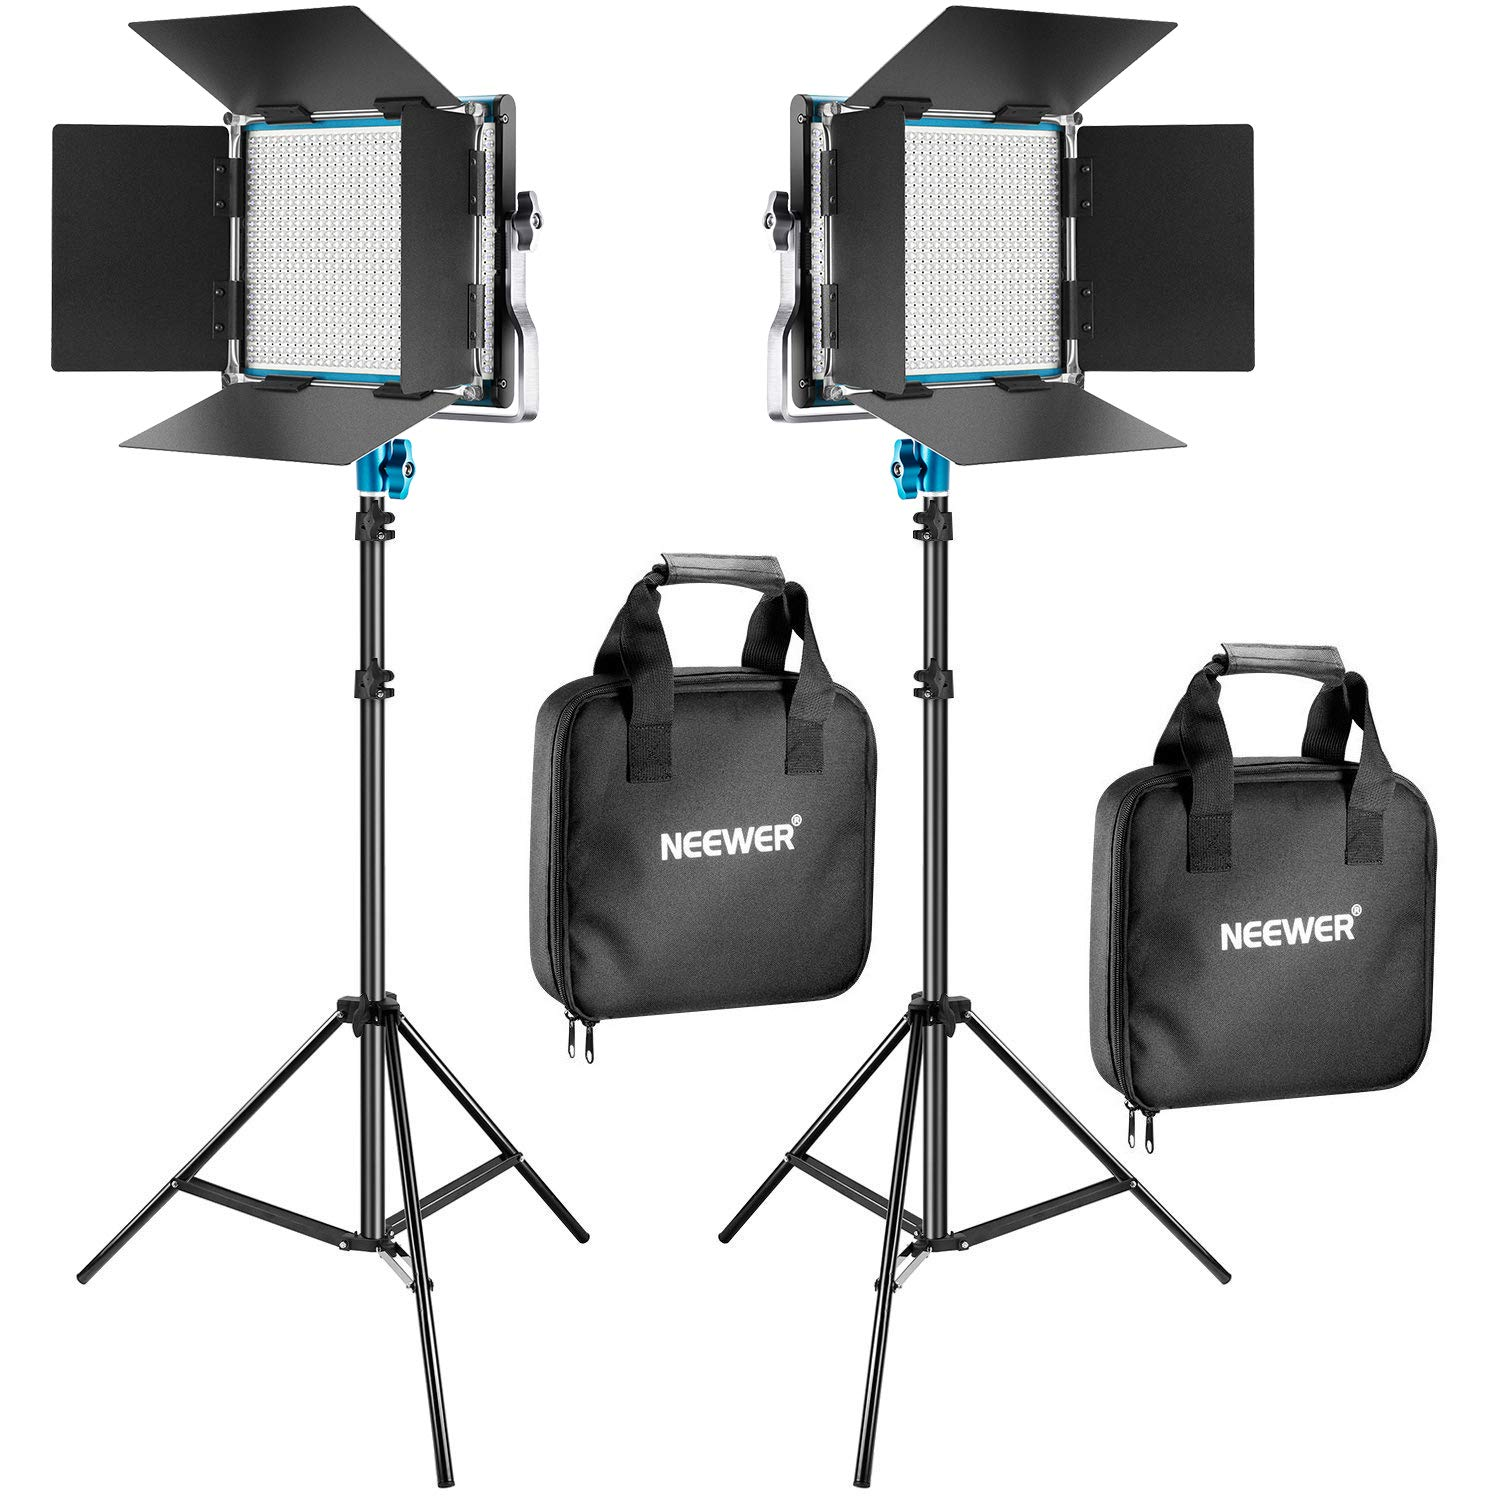 Neewer 2 Packs 660 LED Video Light and Stand Photography Lighting Kit: Dimmable LED Panel (3200-5600K, CRI 96+, Blue) with Heavy Duty Light Stand for Studio Portrait Product Video Shooting by Neewer